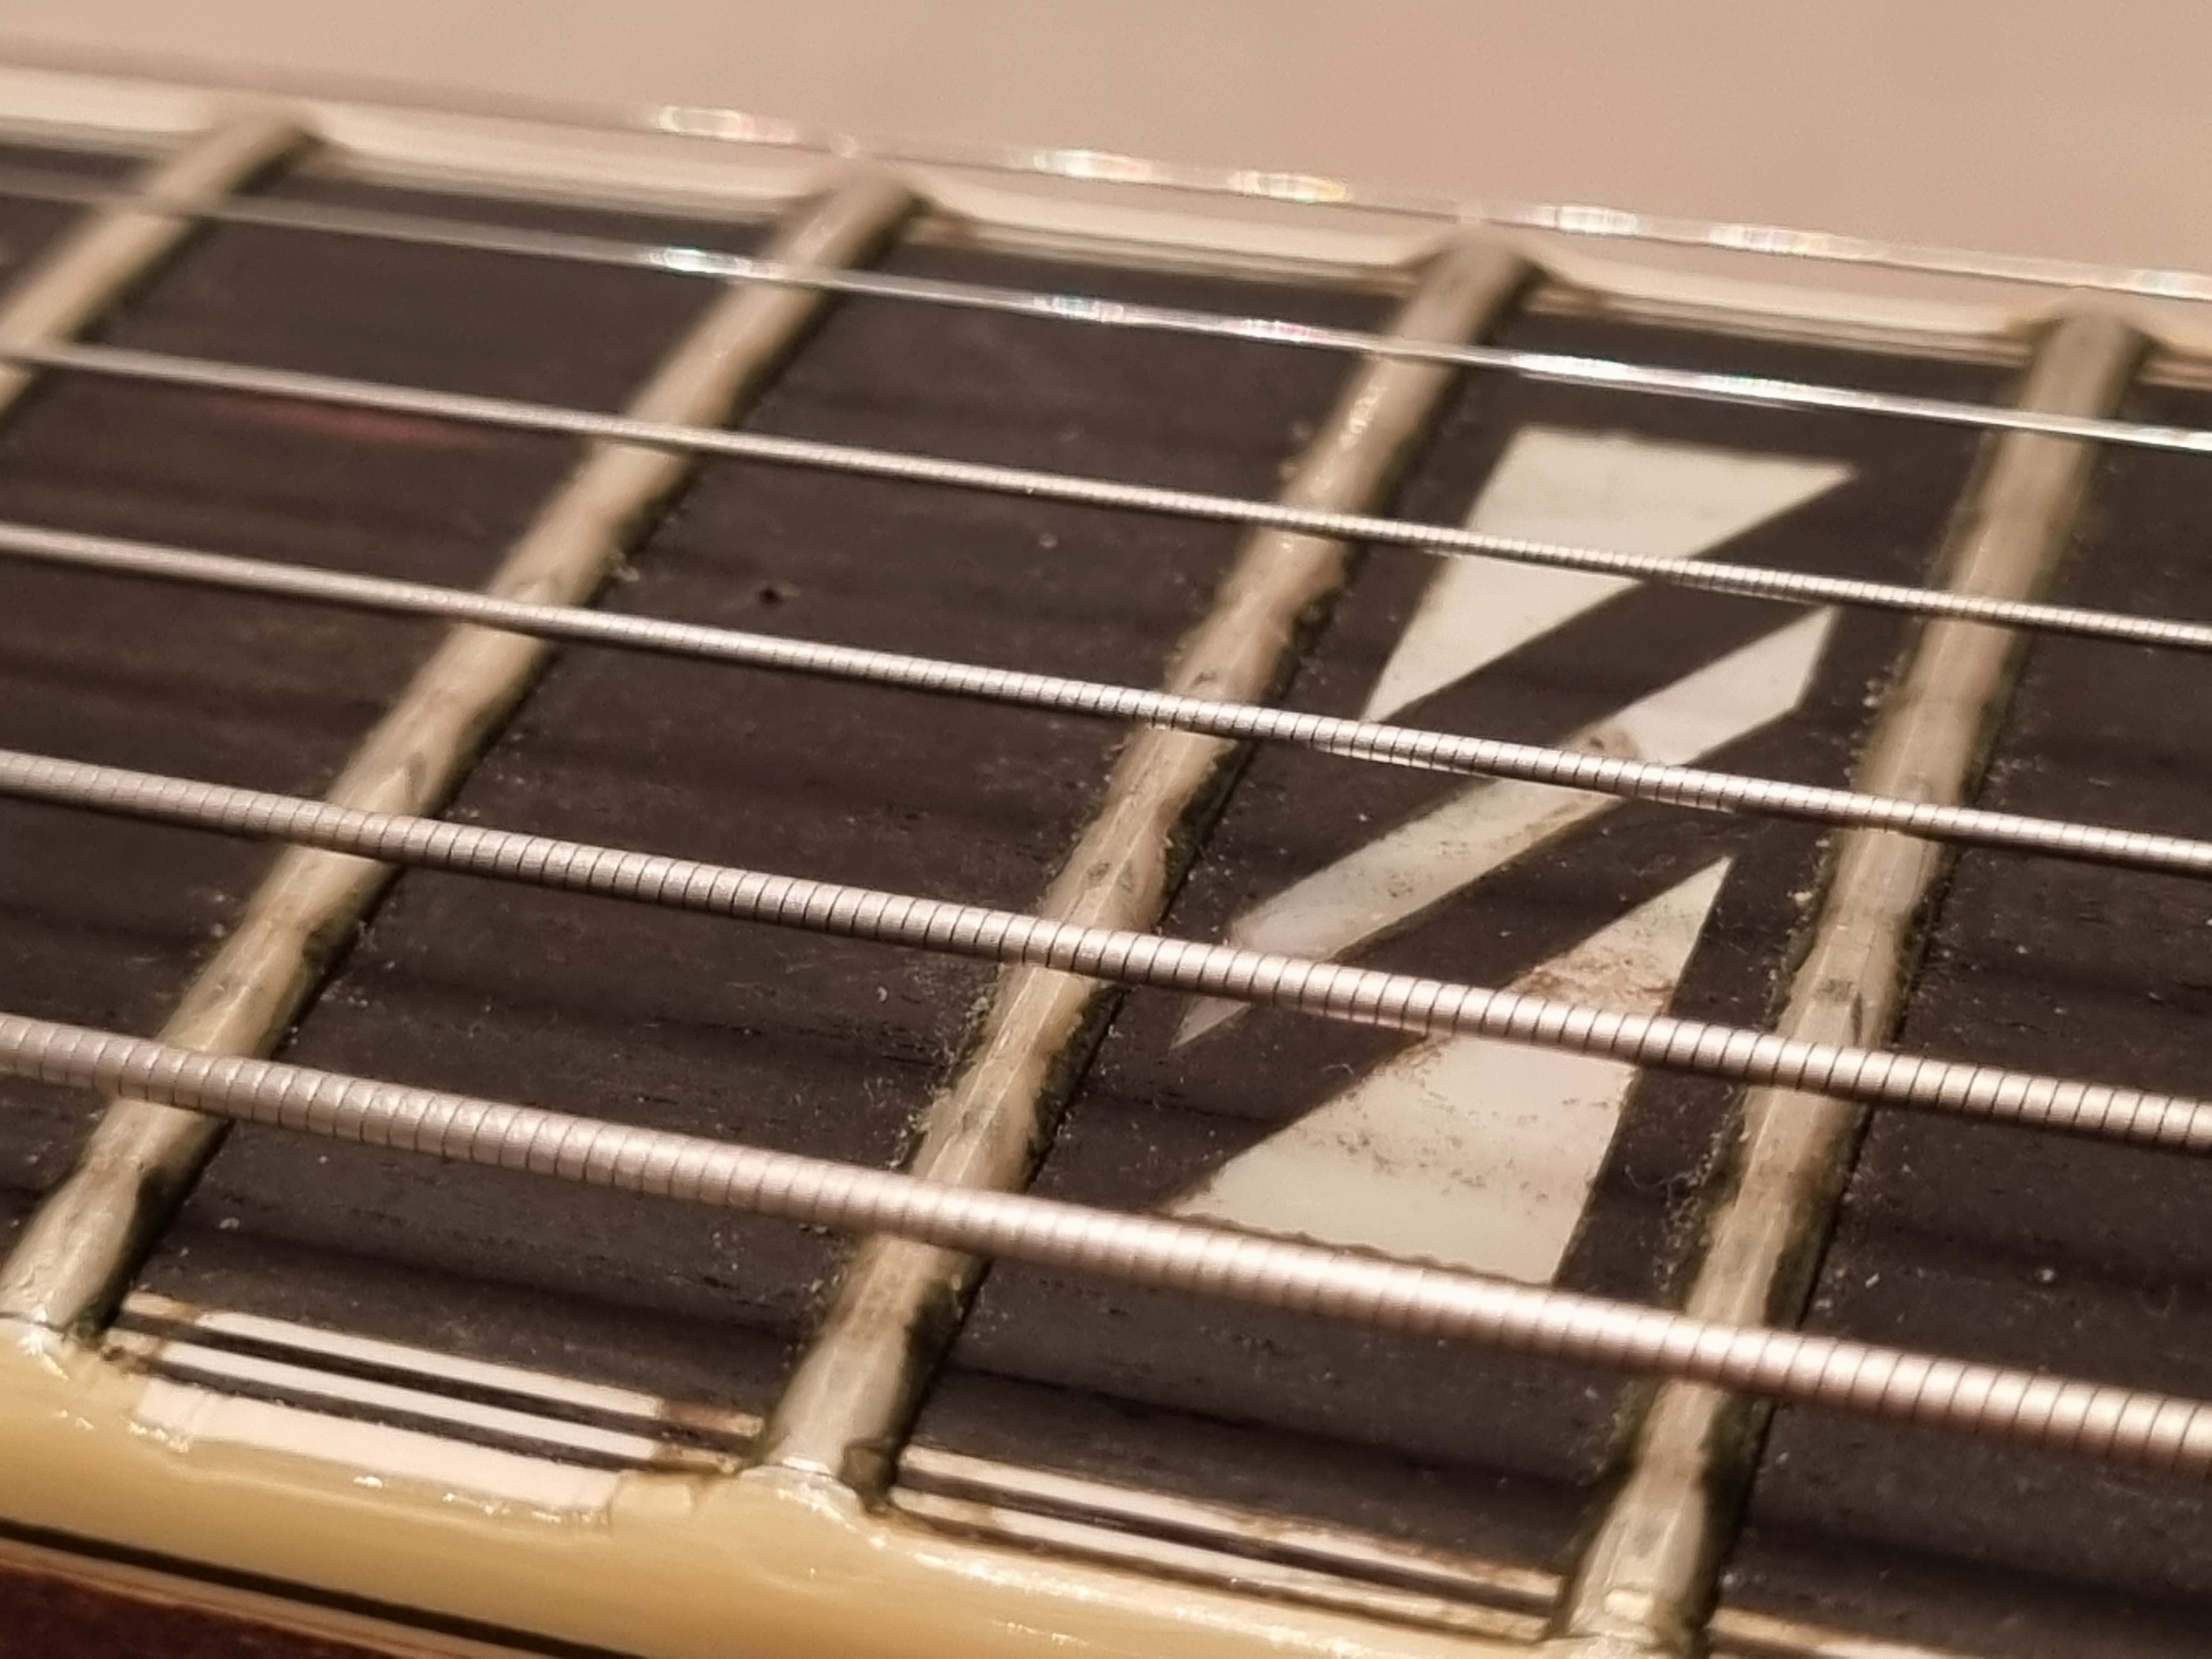 Fretboard pitting - What's the deal?-20210913_201343-jpg